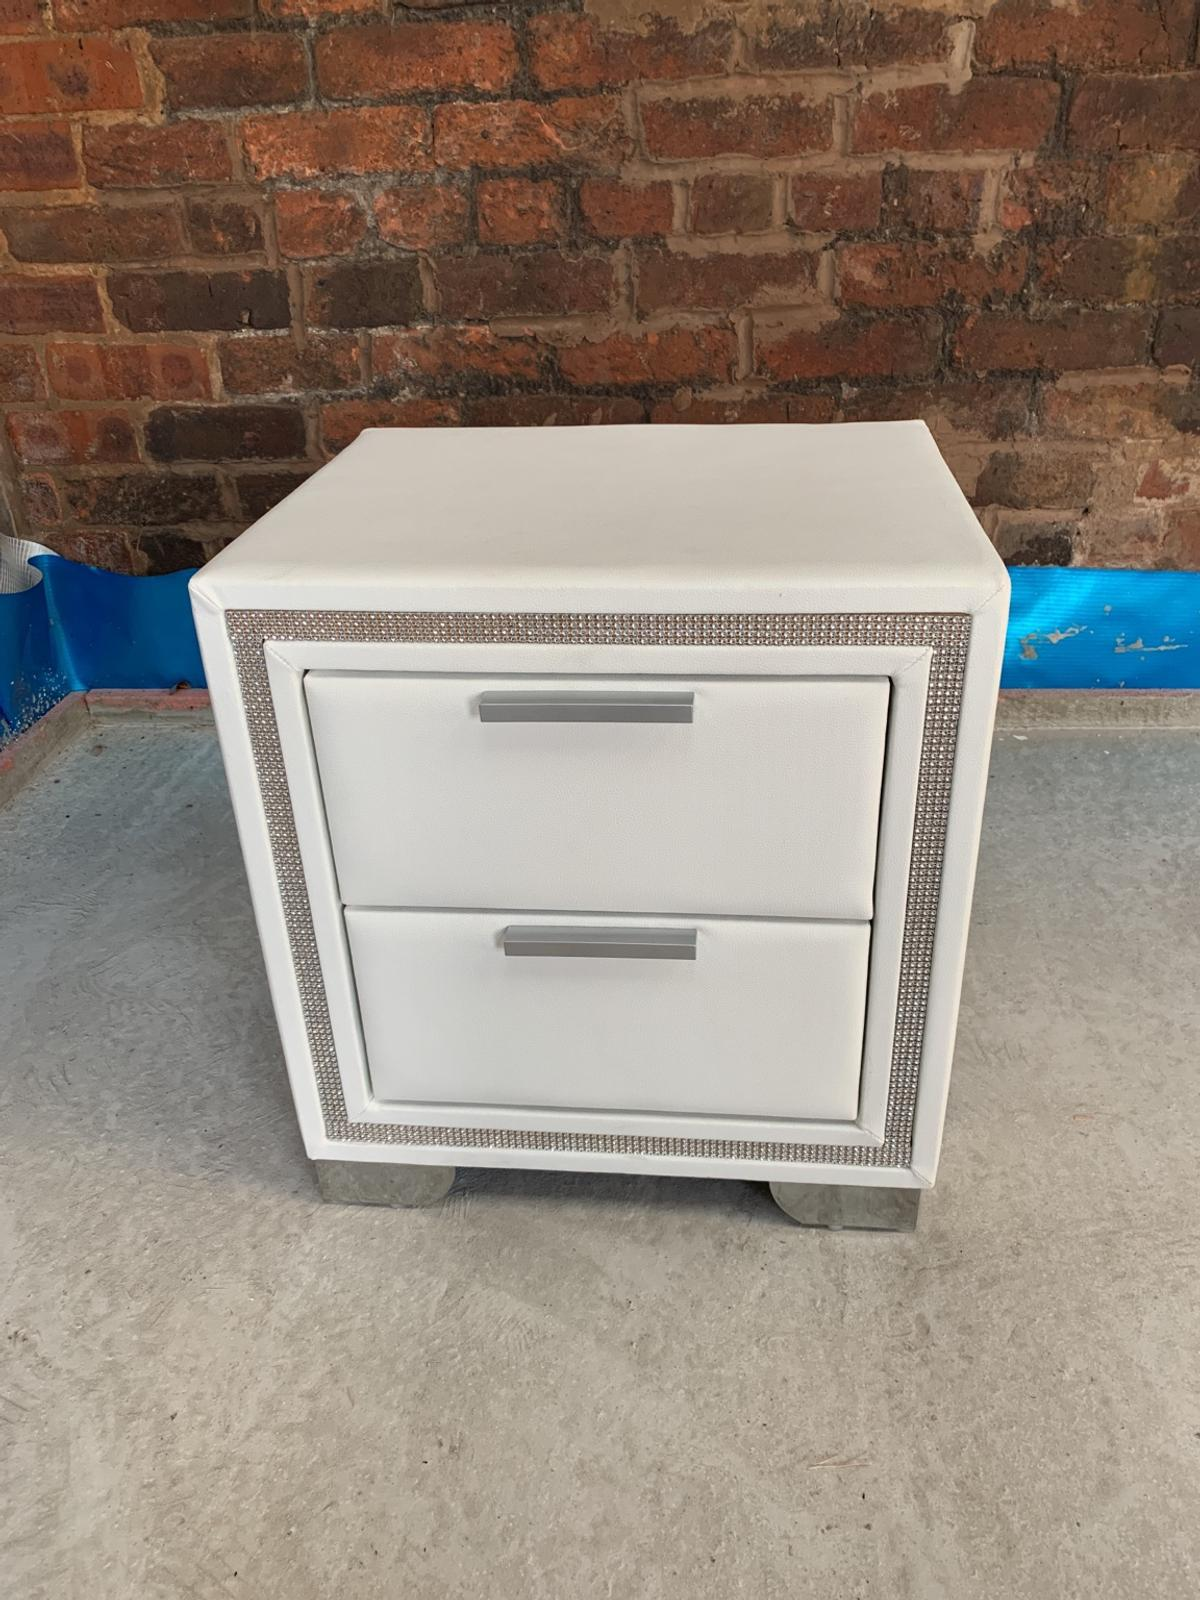 Picture of: White Faux Leather Diamante Bedside Chest In M28 Wigan For 80 00 For Sale Shpock